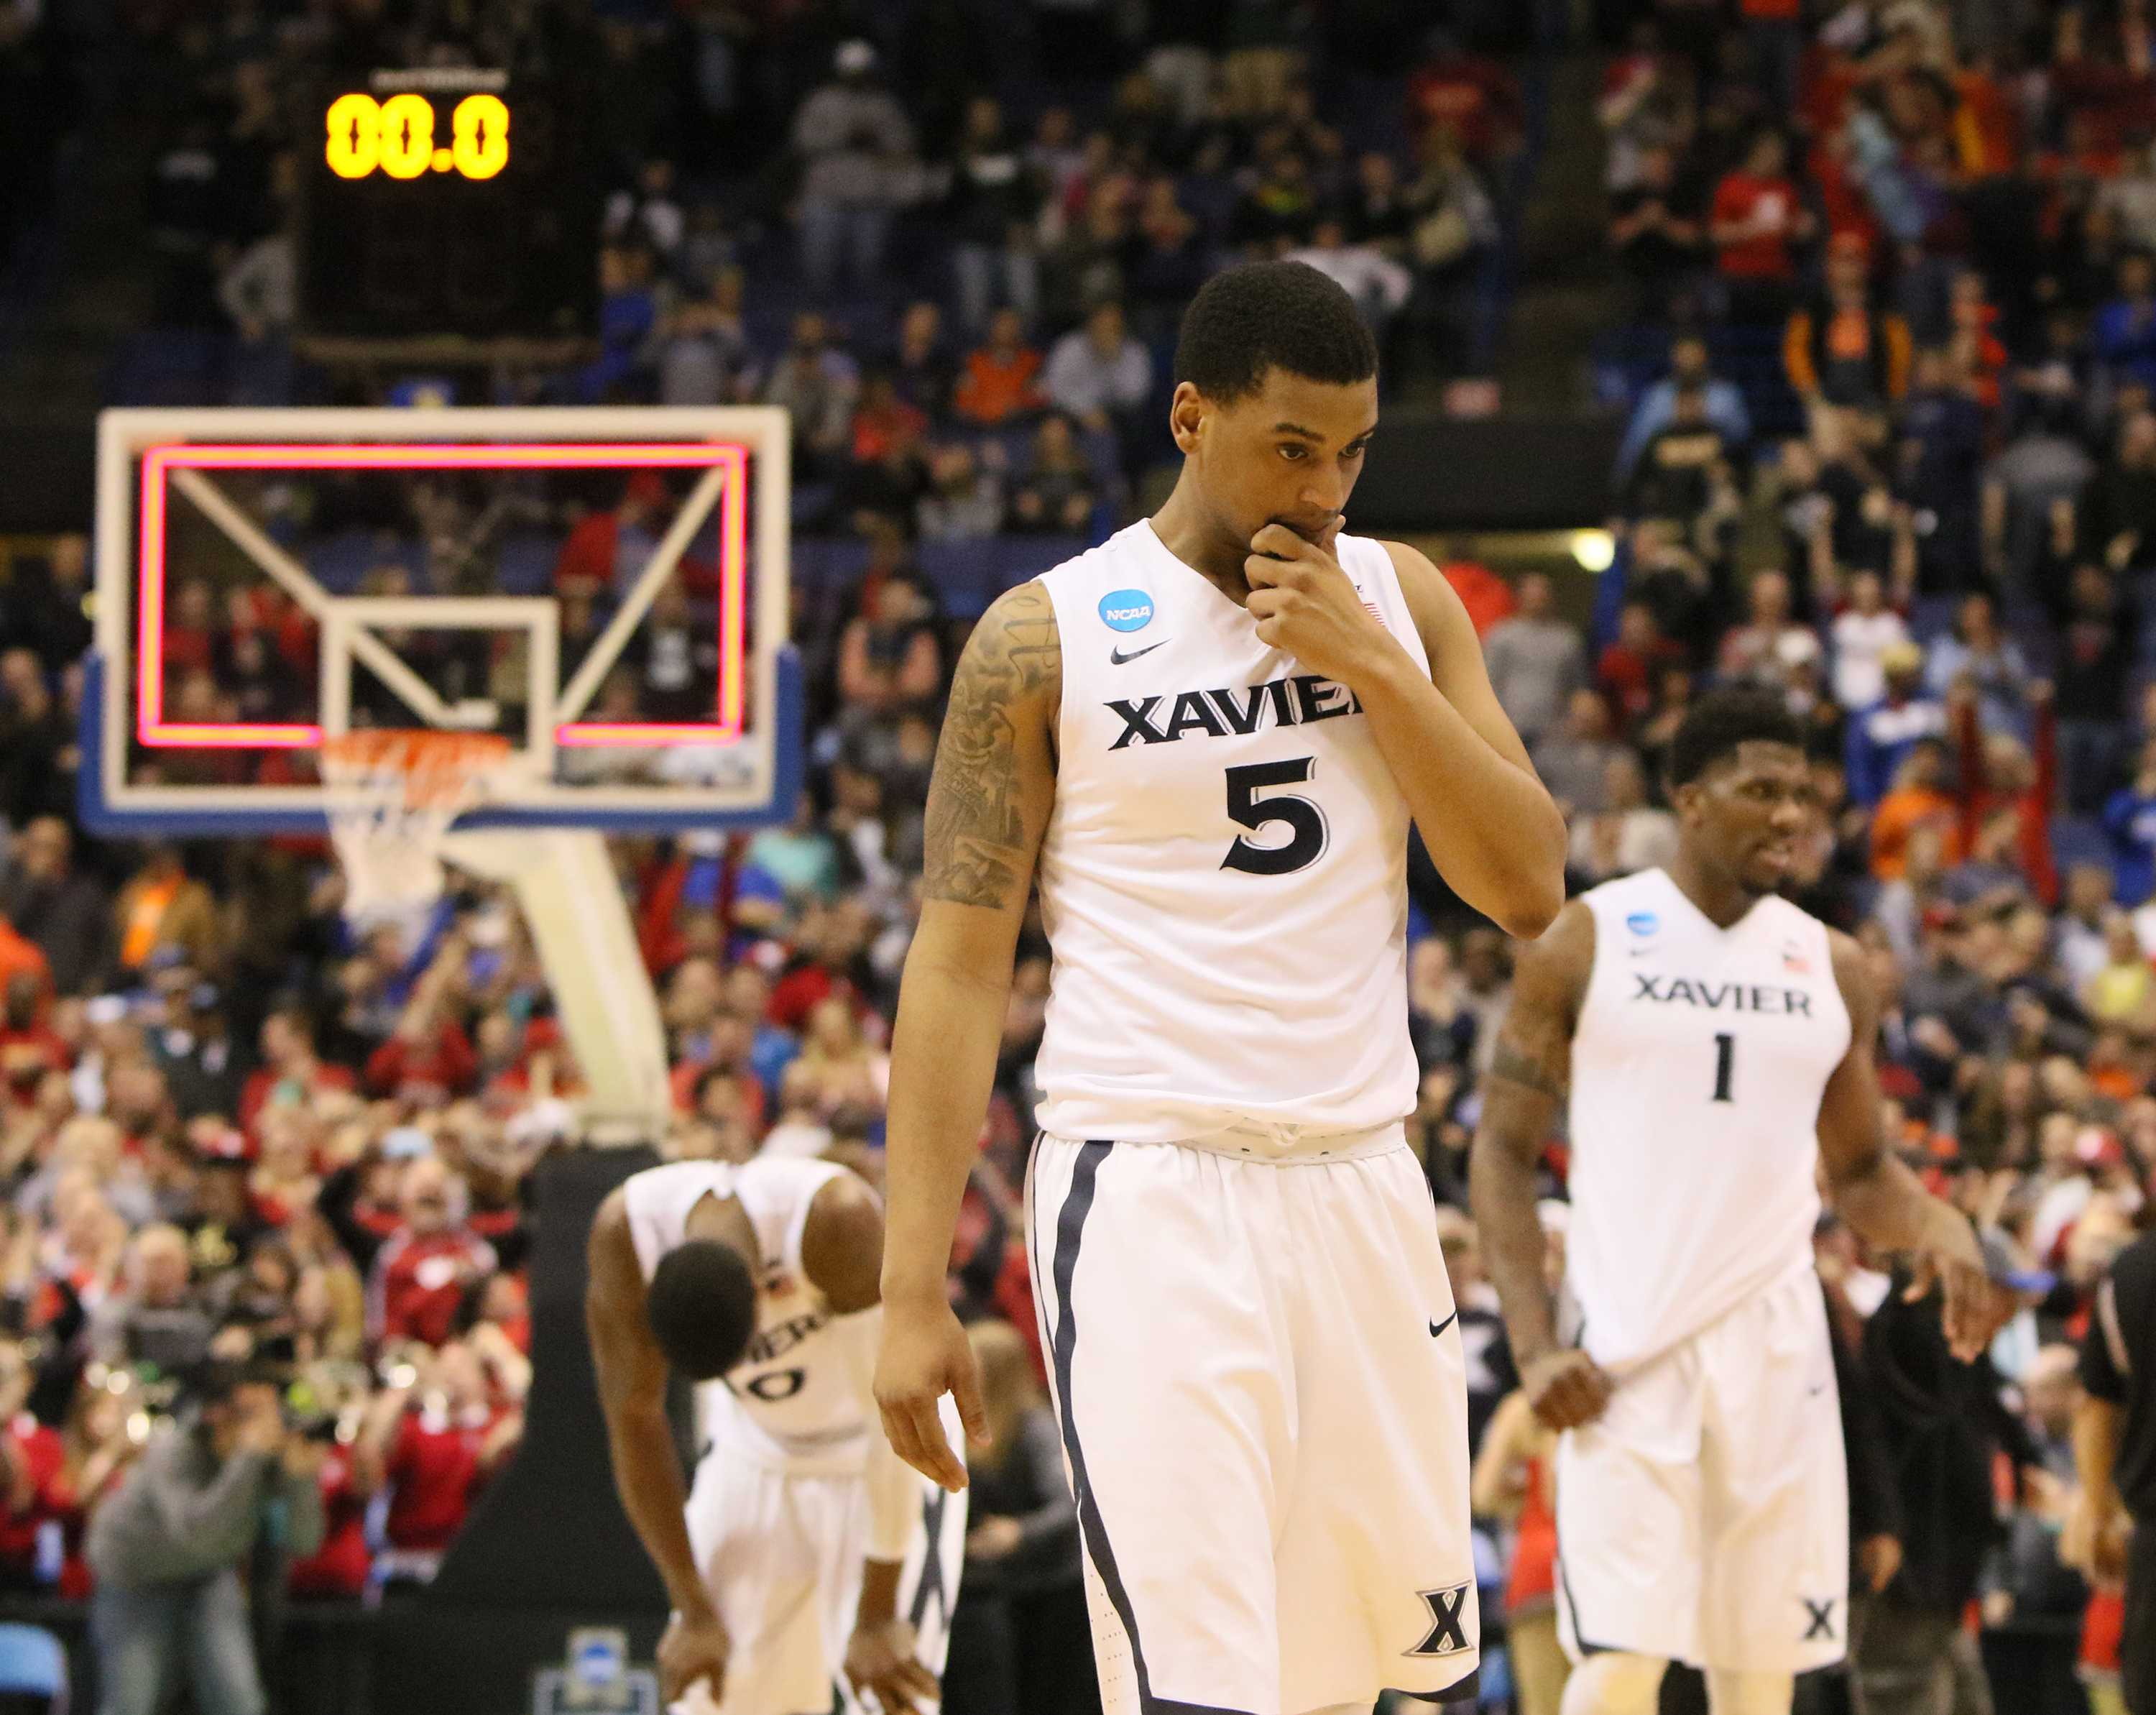 Xavier players, including guard Trevon Bluiett (5), leave the court after a last-second shot by Wisconsin guard Bronson Koenig beat them on Sunday, March 20, 2016, at the Scottrade Center in St. Louis. (Chris Lee/St. Louis Post-Dispatch/TNS)